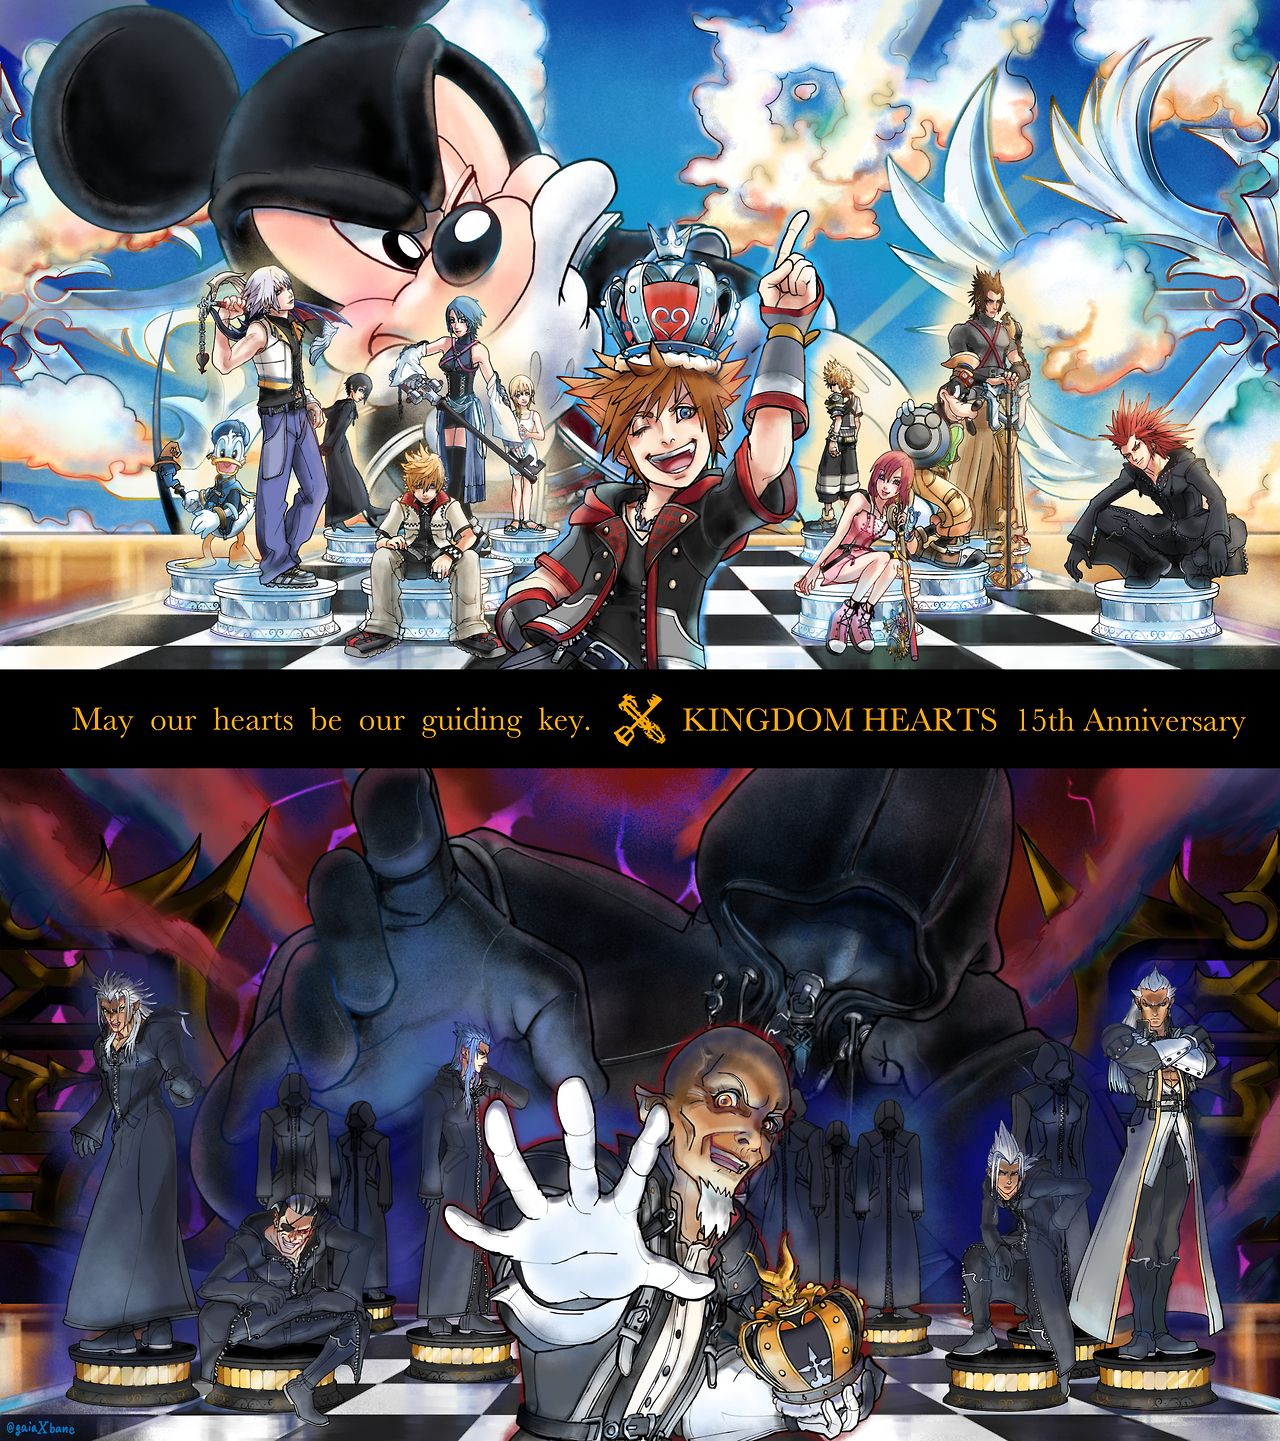 Kingdom Hearts Iphone Wallpaper: Kingdom Hearts Series